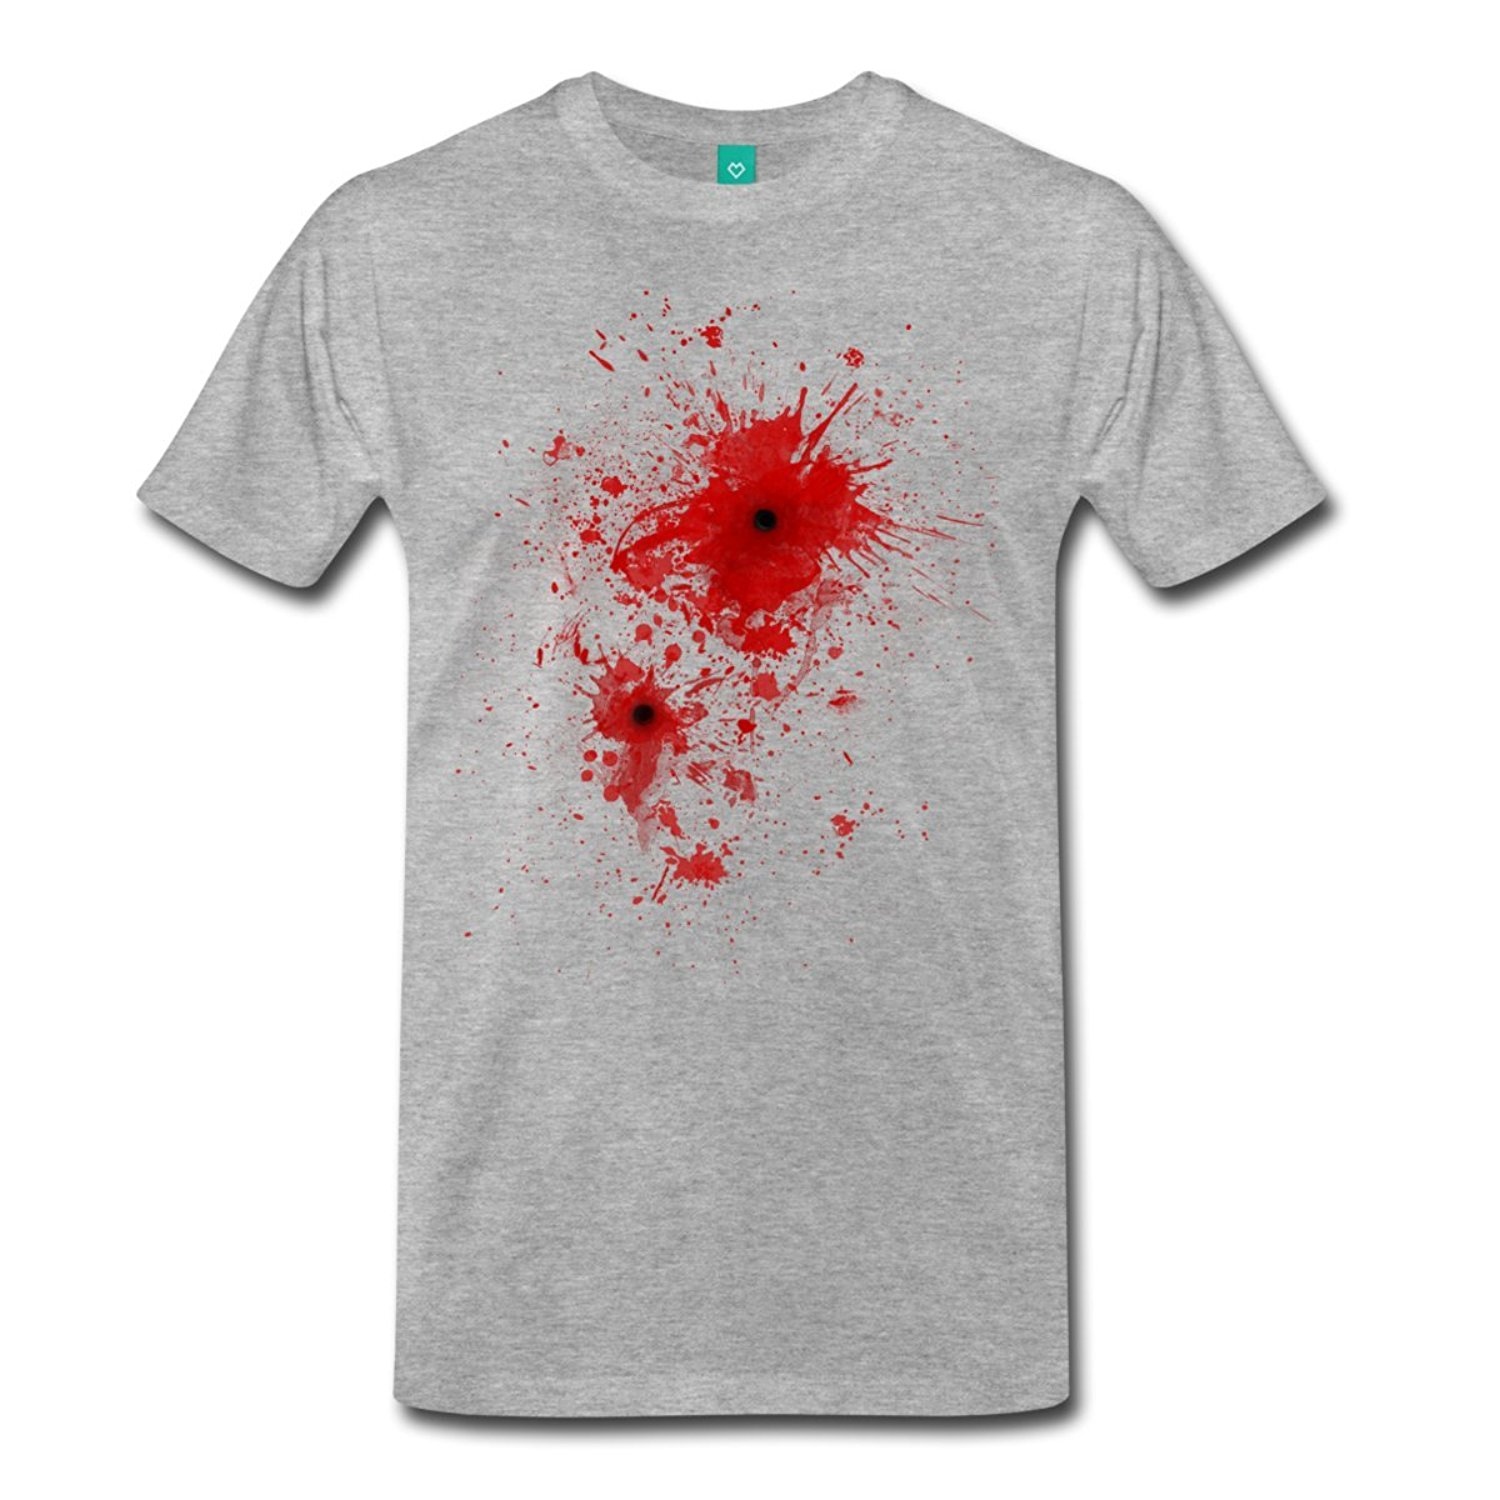 Personalized T Shirts Design Blood Stain Splatter Bullet Wound Crew Neck Short-Sleeve Mens T Shirts